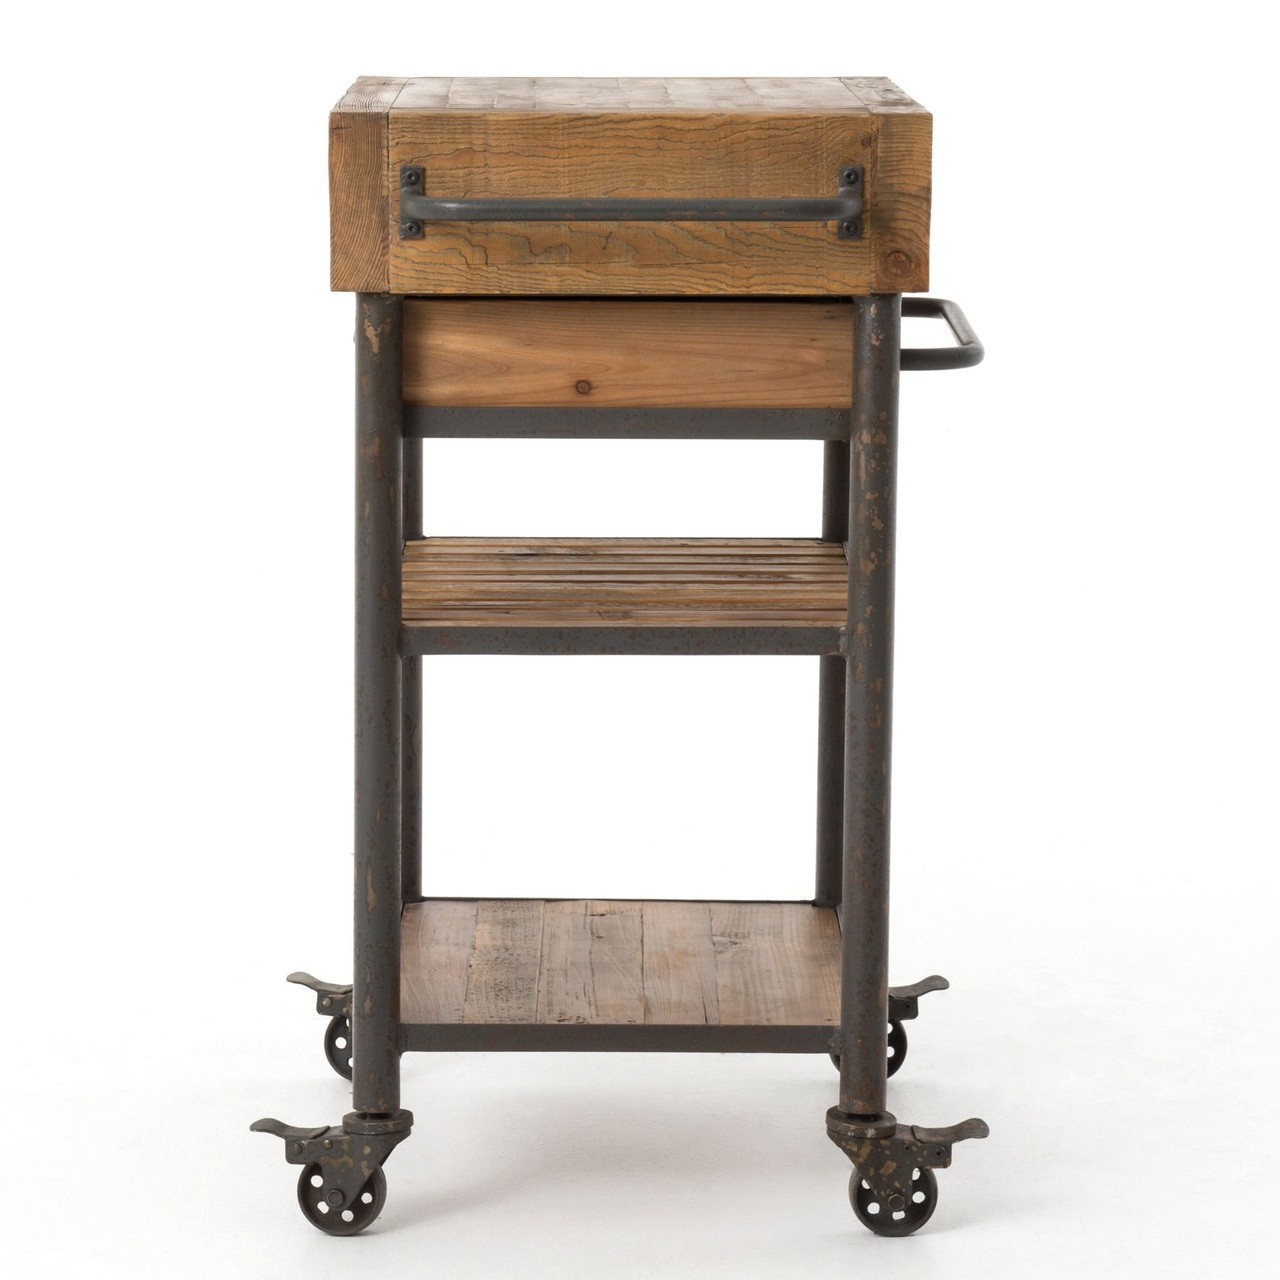 Modern Rustic Industrial Country Portable Kitchen Cart: Industrial Reclaimed Wood Rolling Kitchen Island Cart